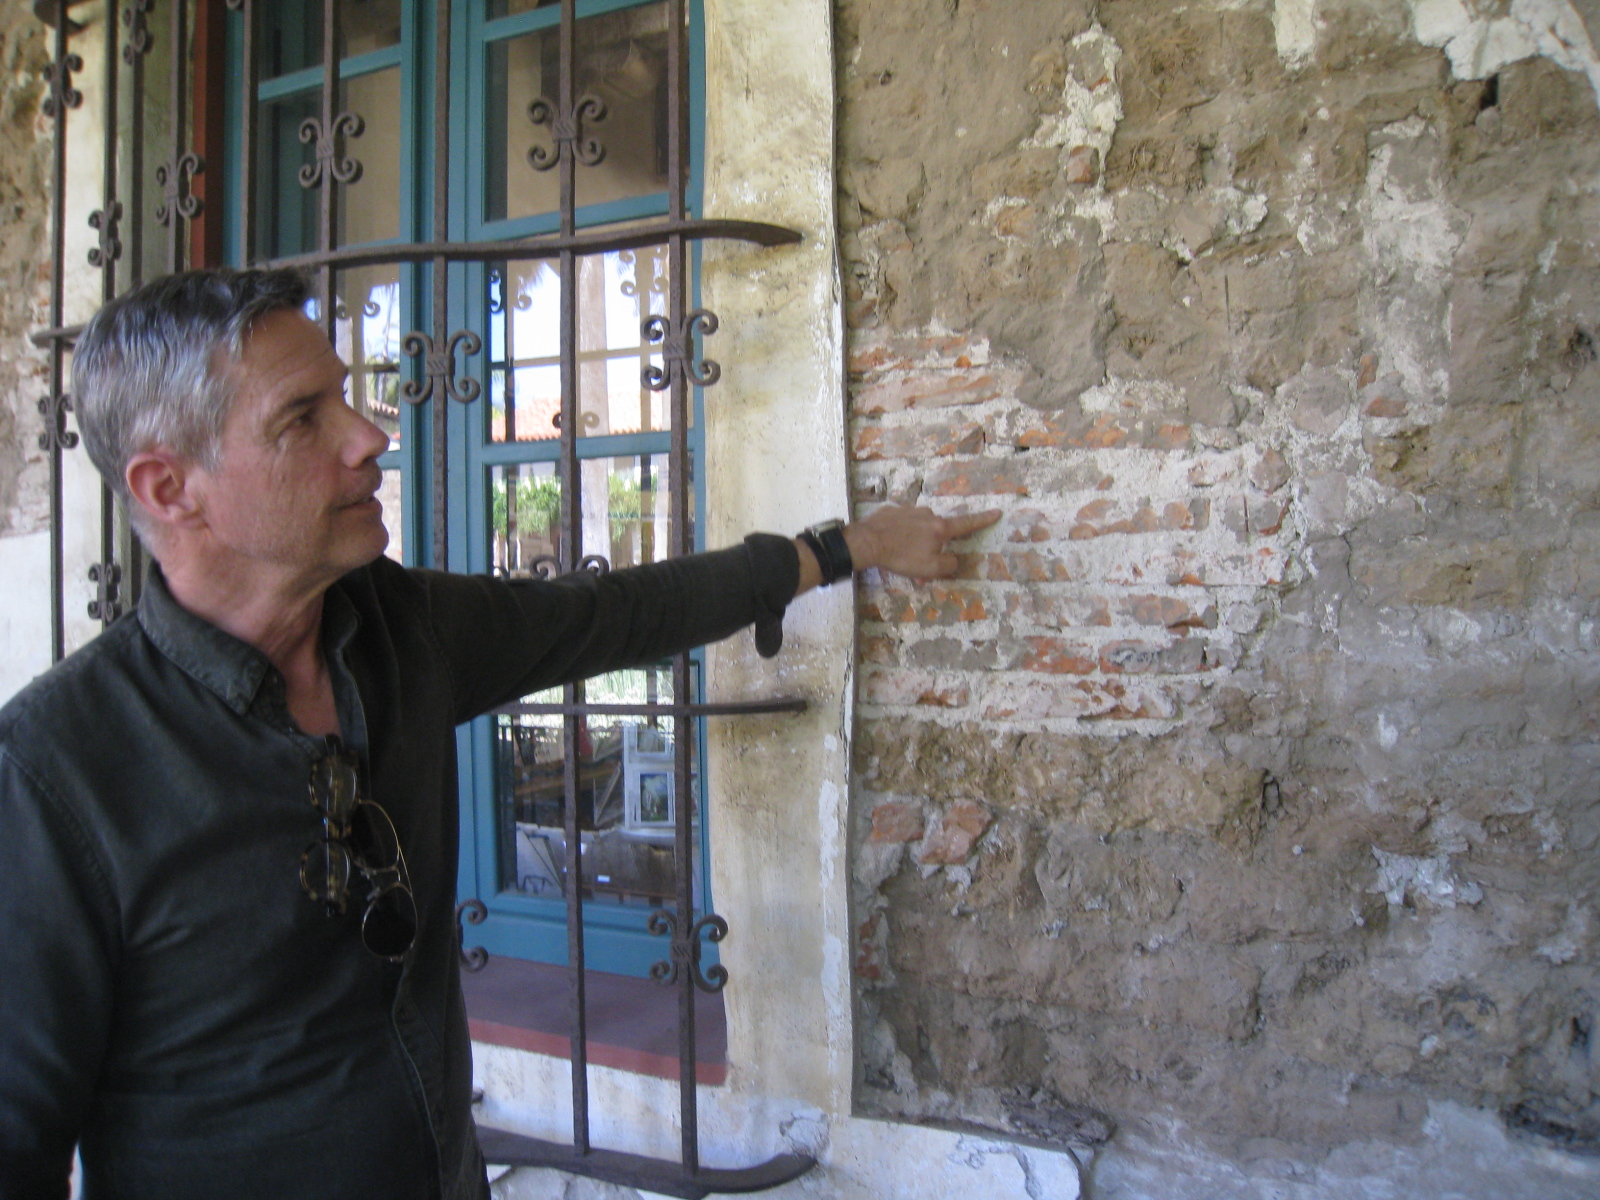 Project conservator John Griswold discusses mix of underlying building materials.